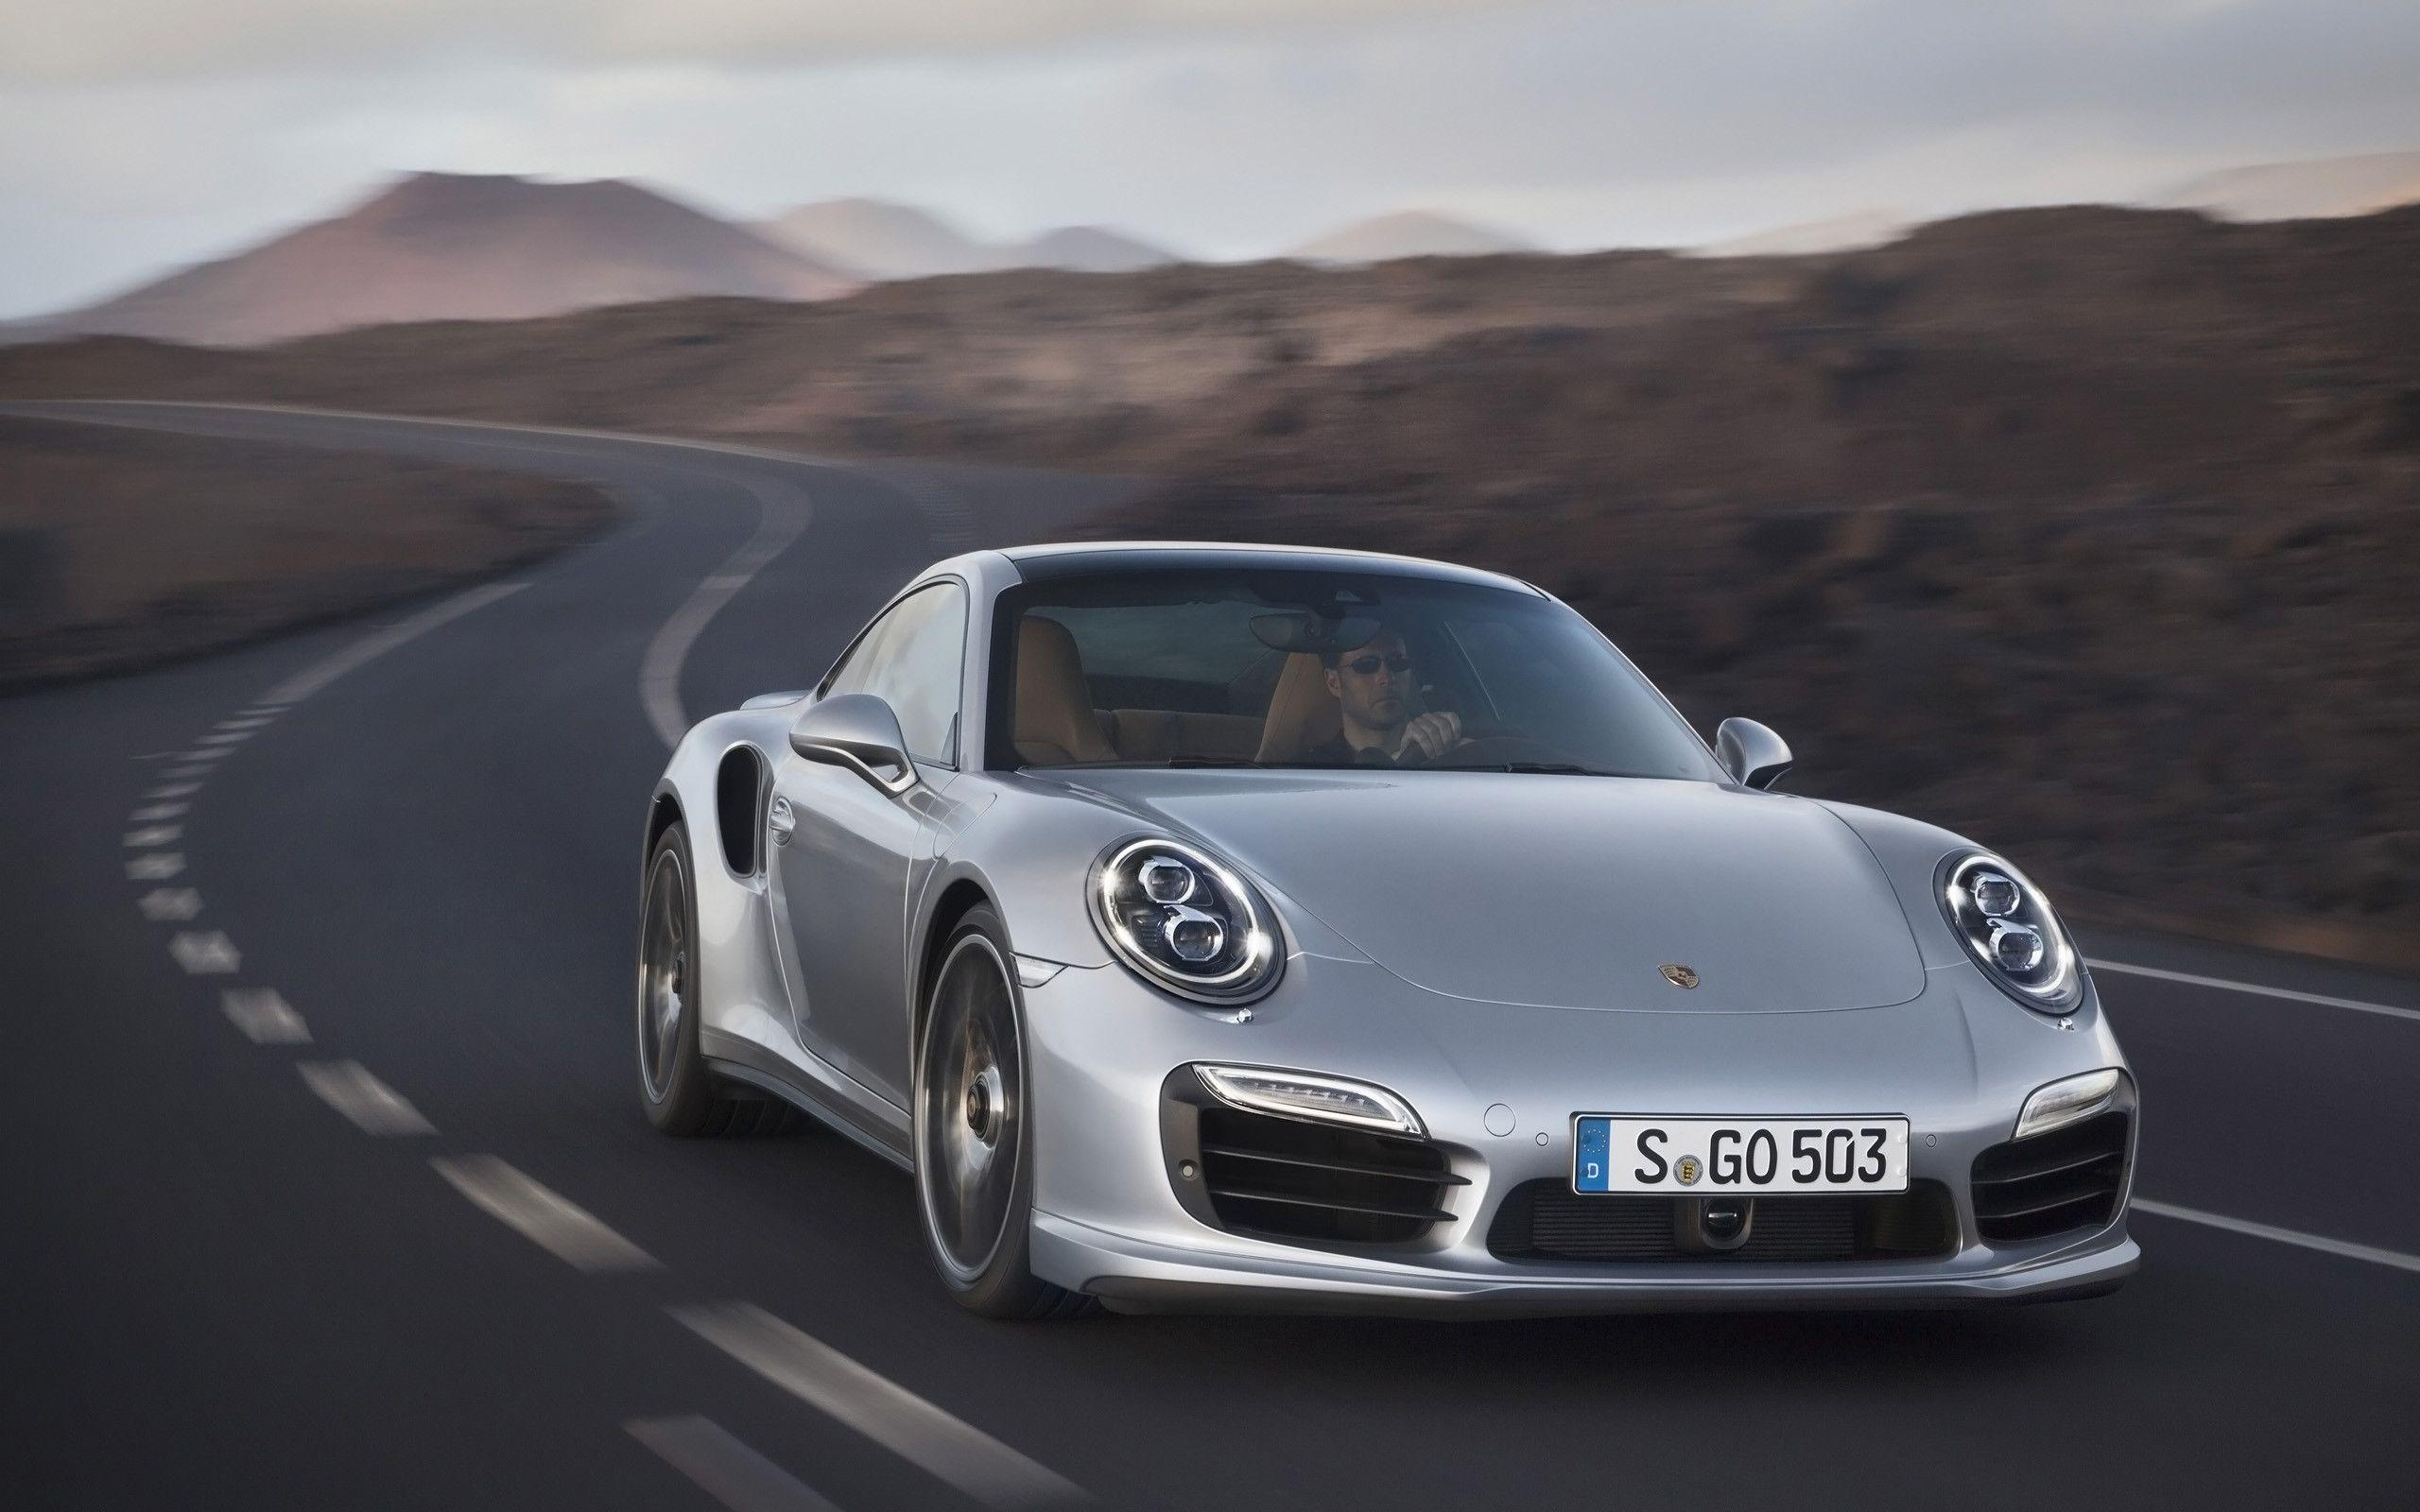 Porsche 911 Turbo Wallpapers, Pictures | Cool Wallpapers